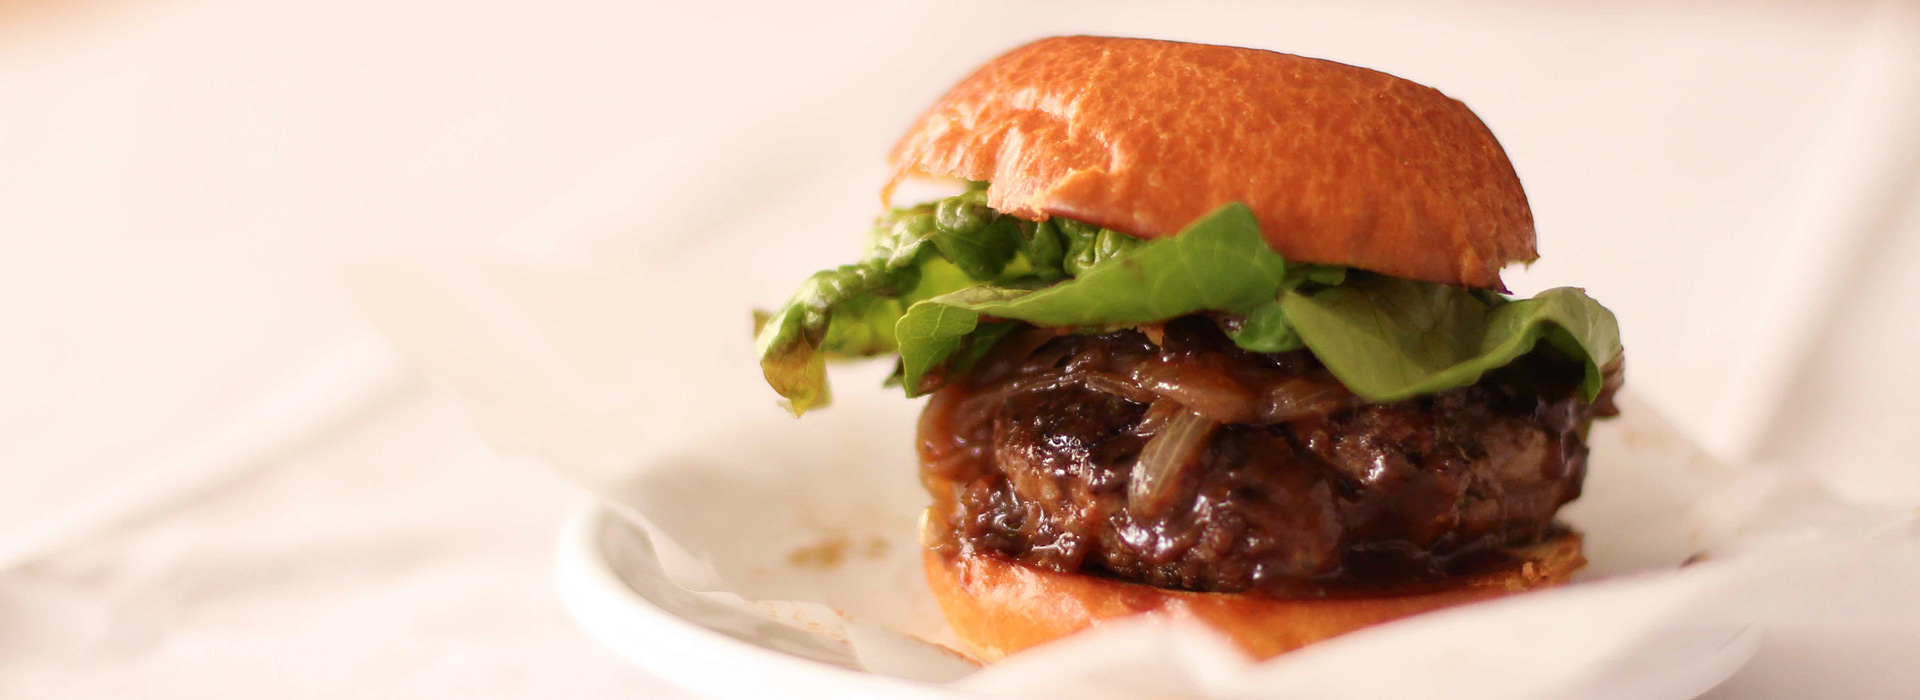 <p>Adding a little Dried Plum Purée to the ground lamb in these sliders enhances the flavors of the spices while also ensuring that the sliders stay juicy when cooked. For the full effect, top the sliders with Caramelized Onions.</p>